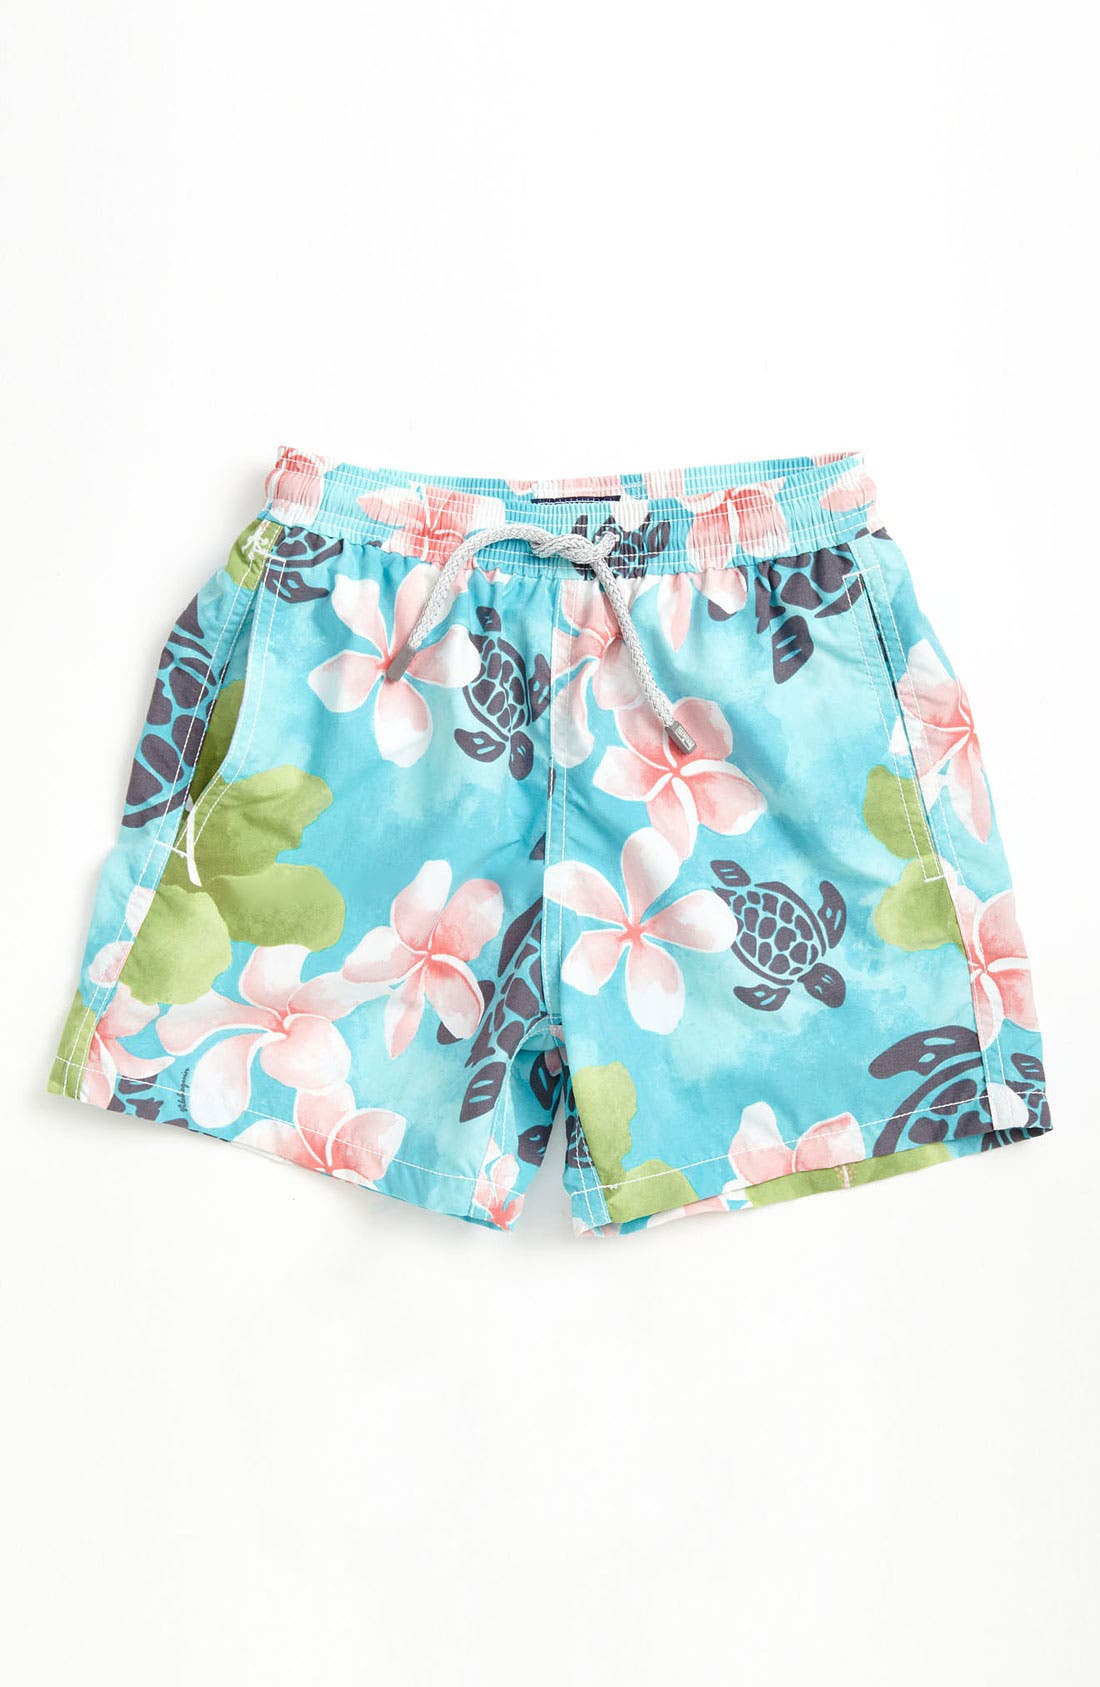 Alternate Image 1 Selected - Vilebrequin 'Jim/Jam' Print Swim Trunks (Little Boys & Big Boys)